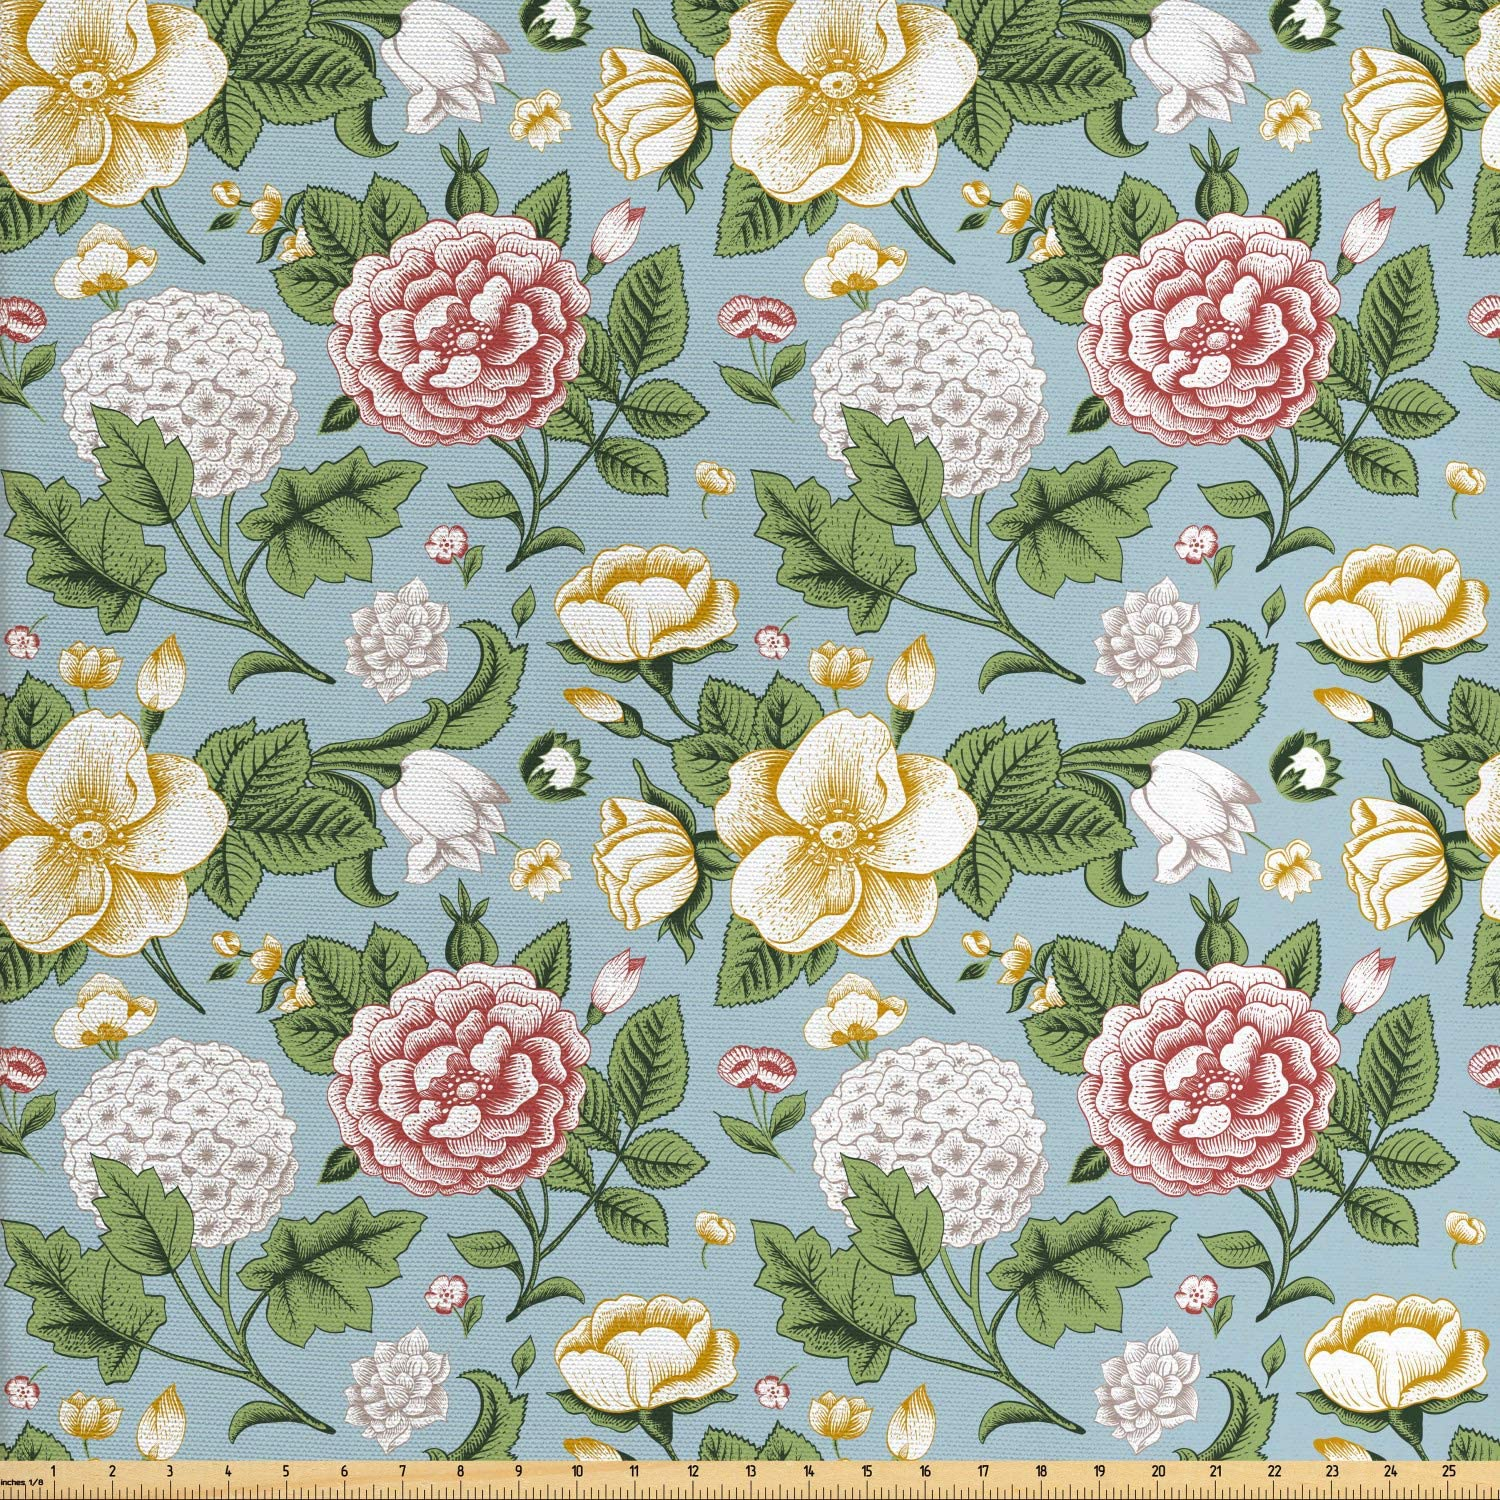 Ambesonne Colorful Fabric by The Yard, Vintage Style Chrysanthemum Flowers and Hoya Blooms Illustration, Decorative Fabric for Upholstery and Home Accents, 1 Yard, Pale Blue Grey Multicolor